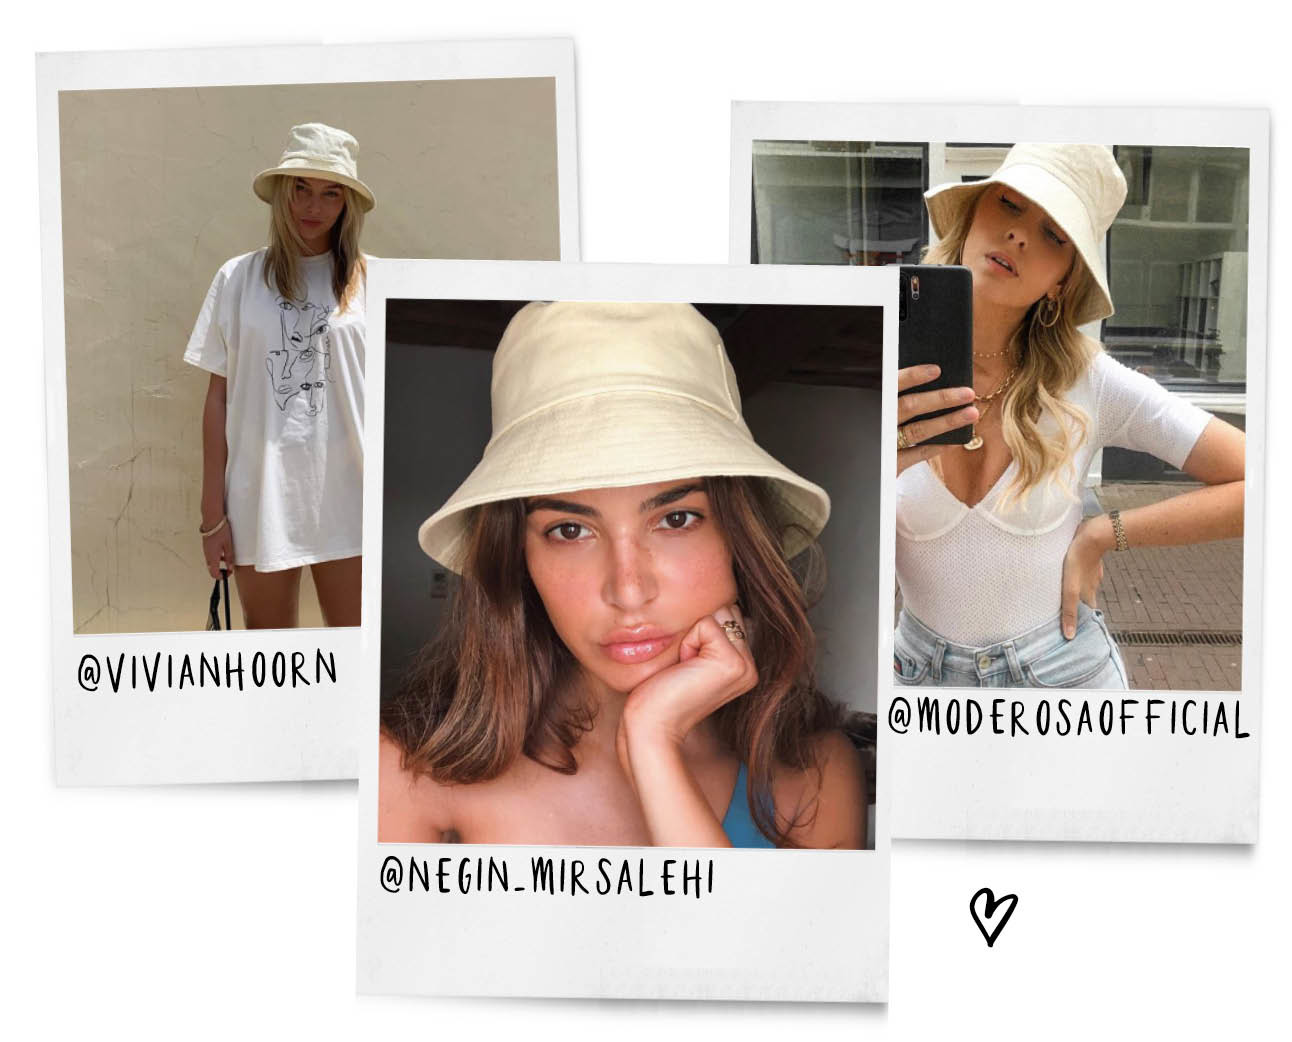 buckethat, instagram girls, vivian hoorn, negin mirsalehi, mode rosa